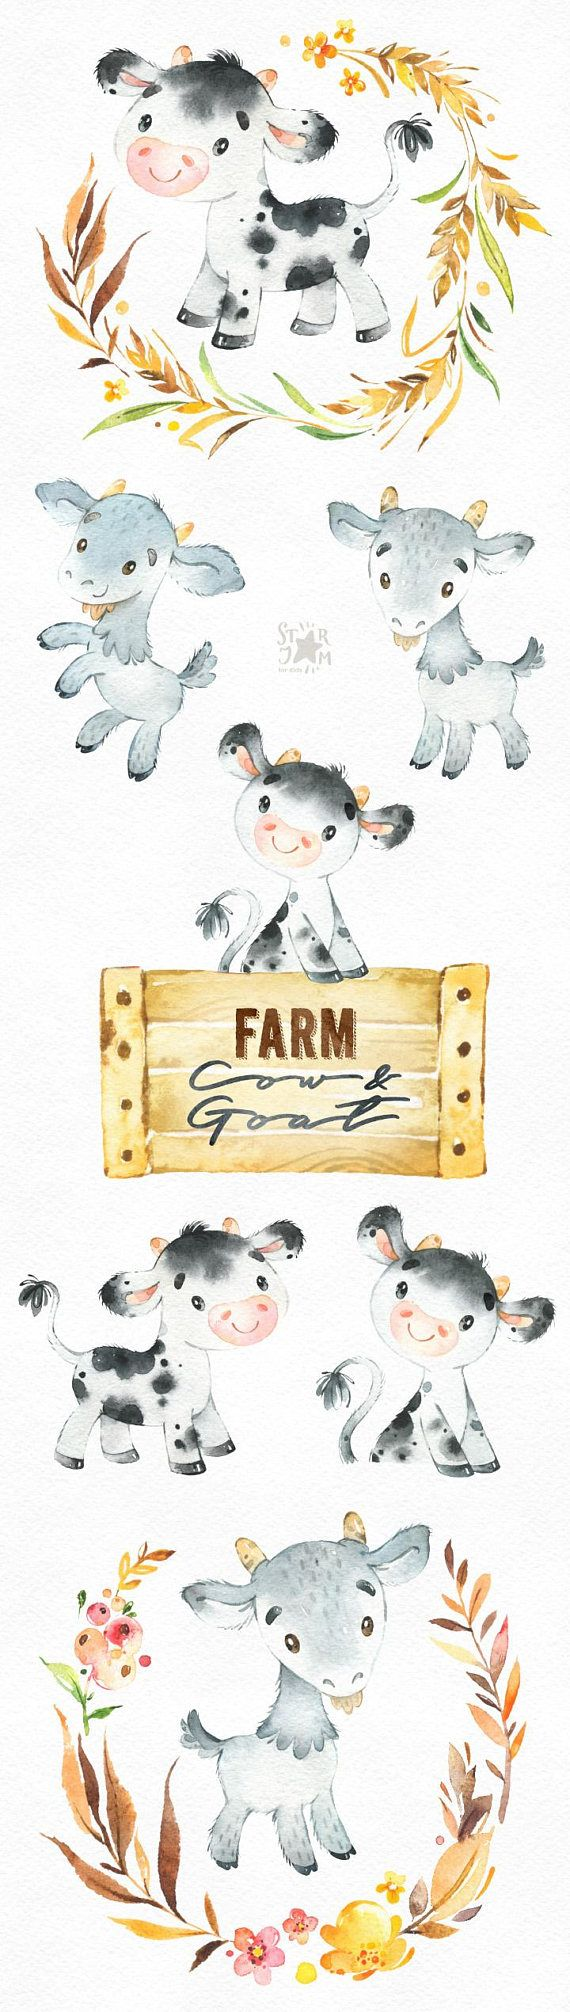 This Farm Cow & Goat watercolor set is just what you needed for the perfect invitations, craft projects, paper products, party decorations, printable, greetings cards, posters, stationery, scrapbooking, stickers, t-shirts, baby clothes, web designs and much more. :::::: DETAILS ::::::